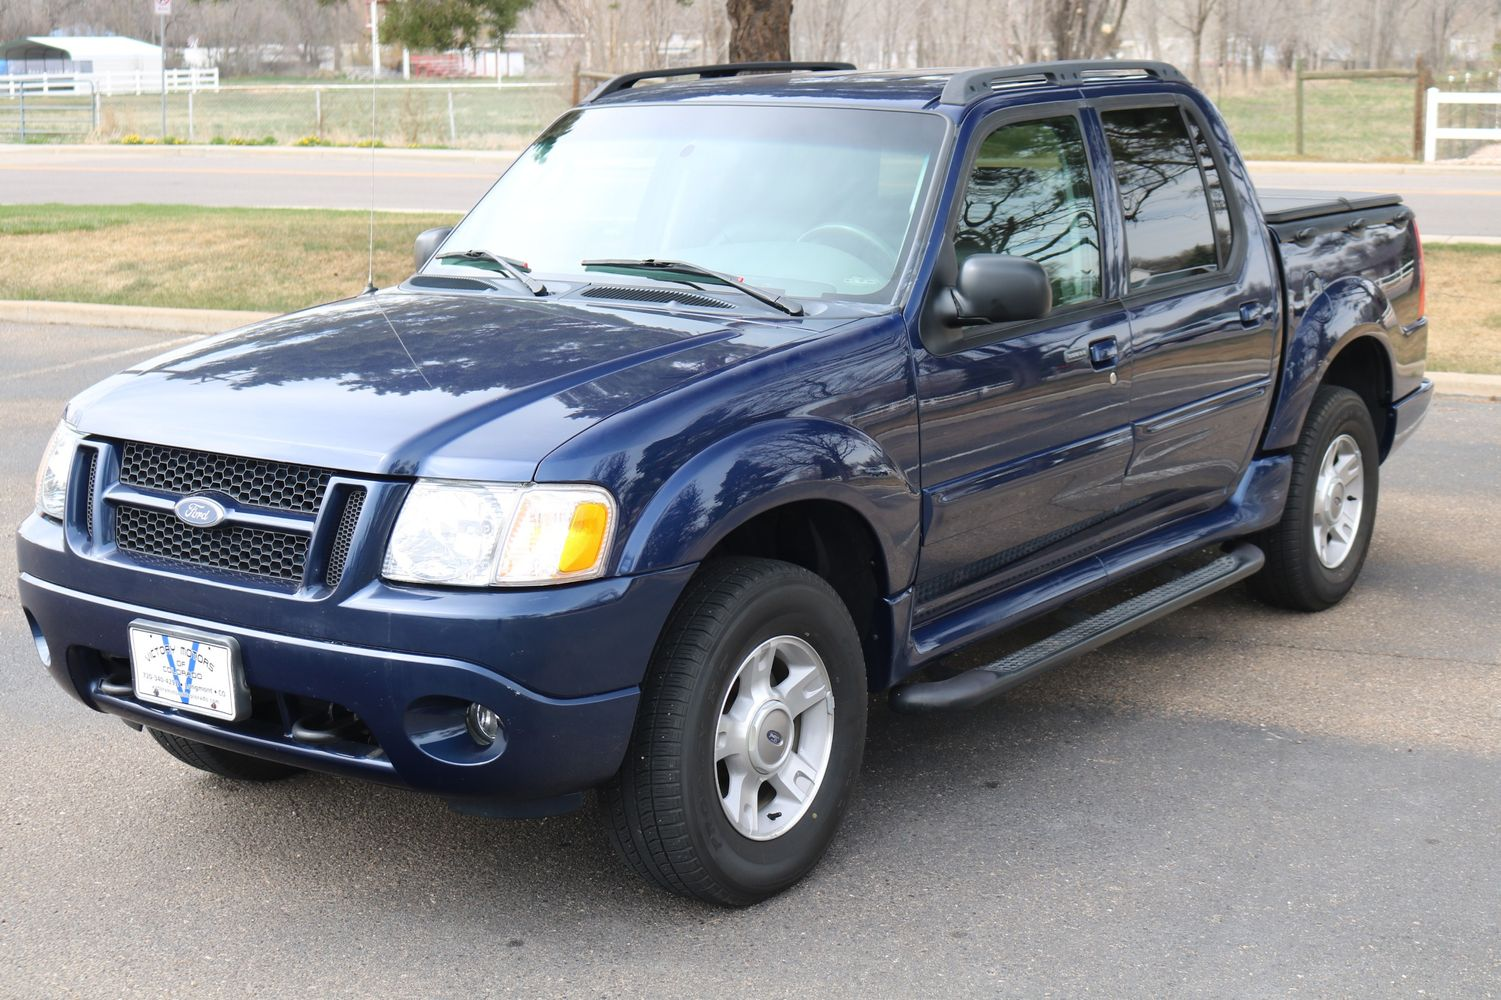 2004 Ford Explorer Sport Trac Xlt Victory Motors Of Colorado Fuel Filter Low Mileage Sold View 42 Hi Res Photos